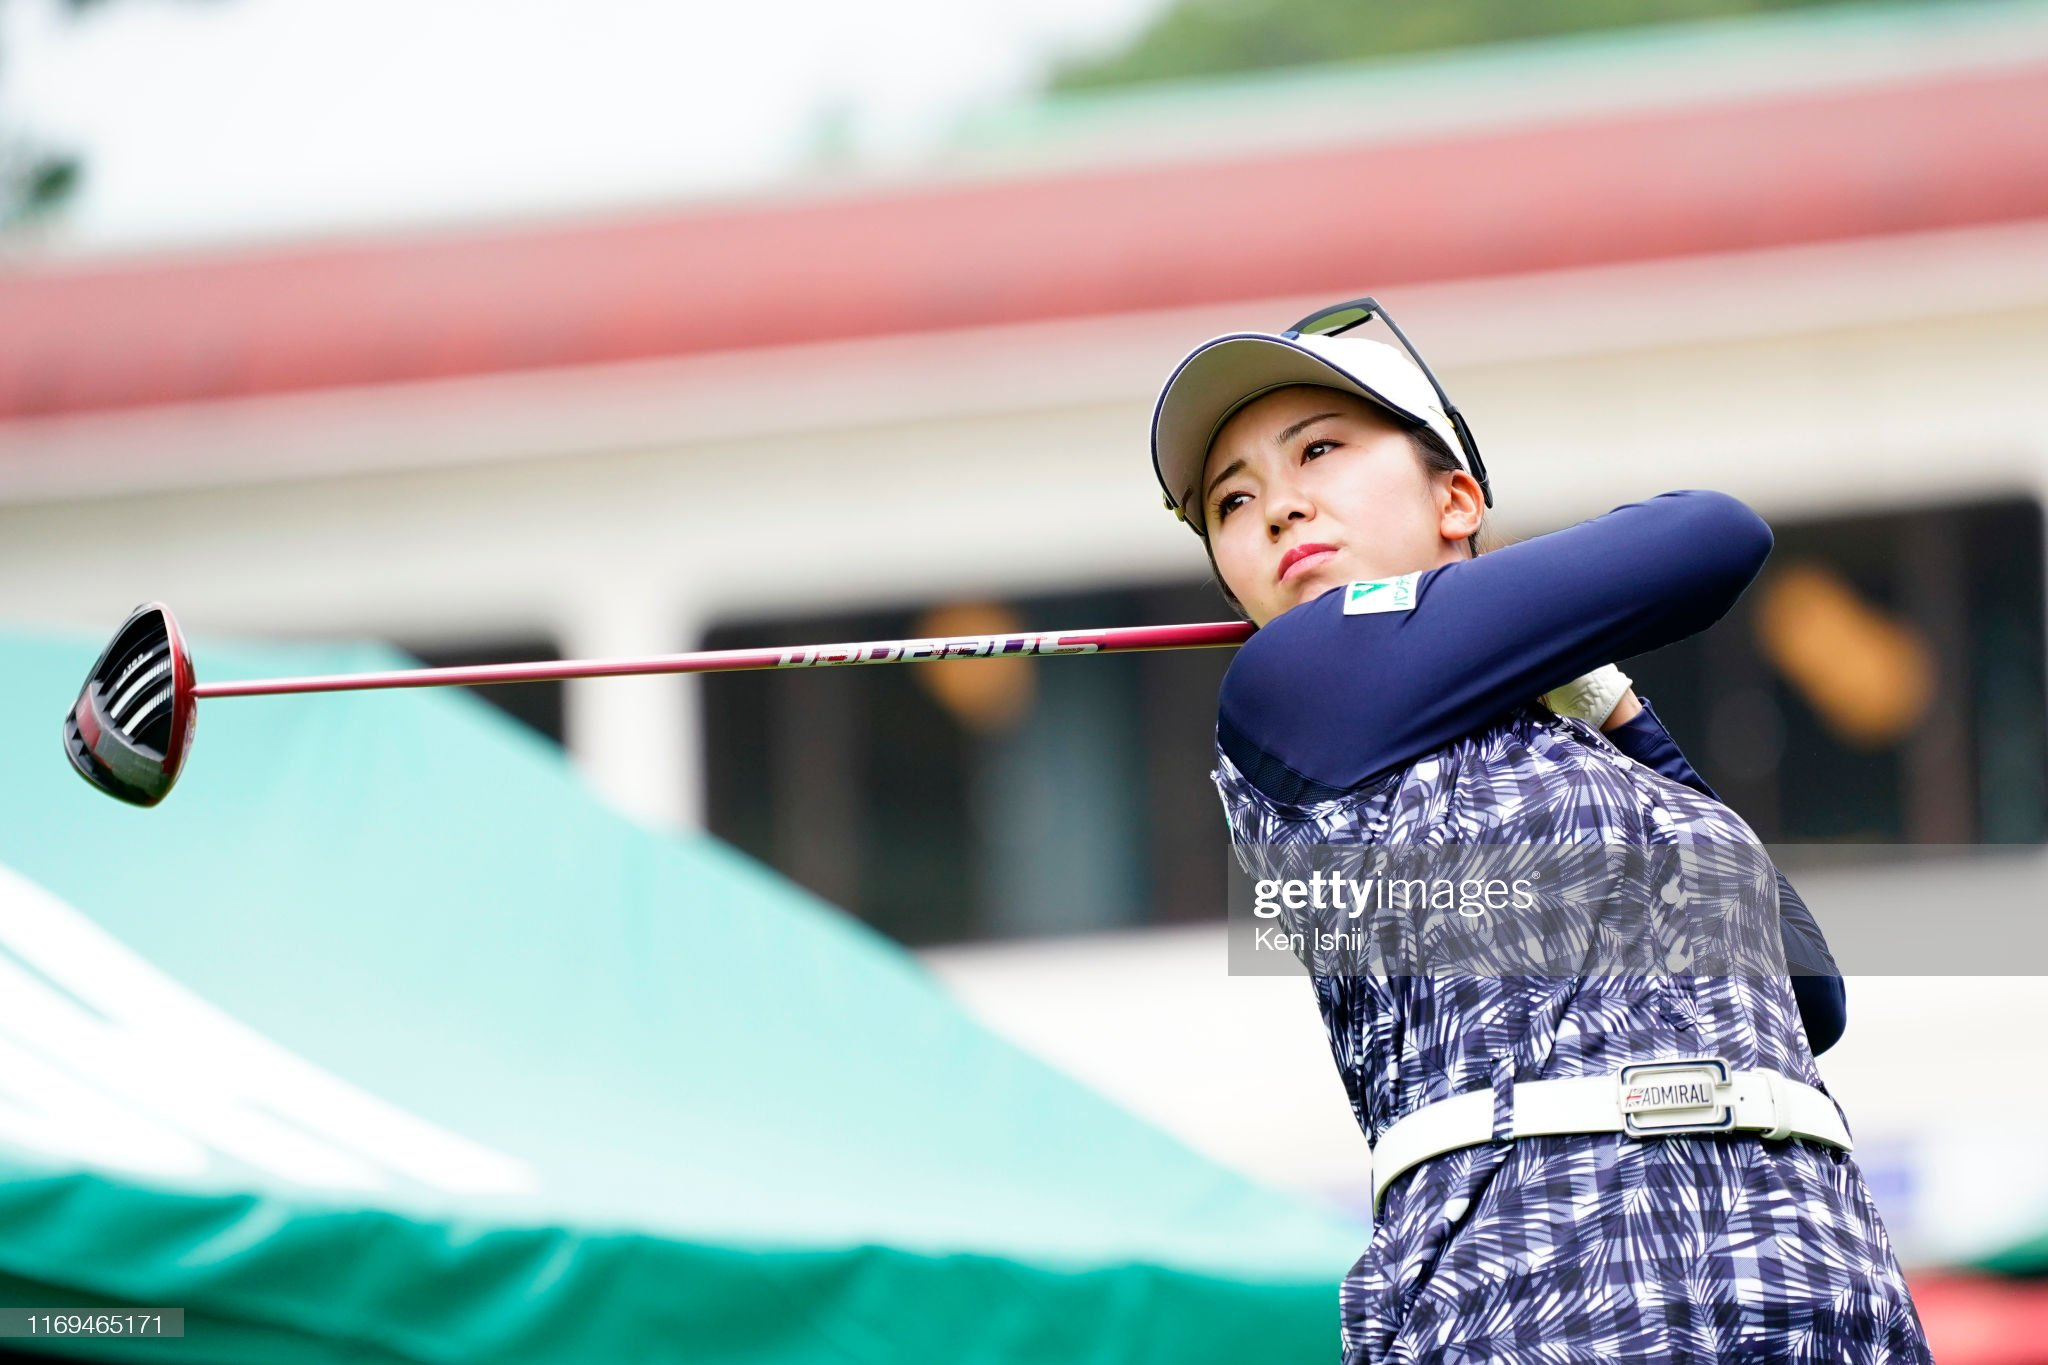 https://media.gettyimages.com/photos/kotone-hori-of-japan-hits-her-tee-shot-on-the-10th-hole-during-the-picture-id1169465171?s=2048x2048